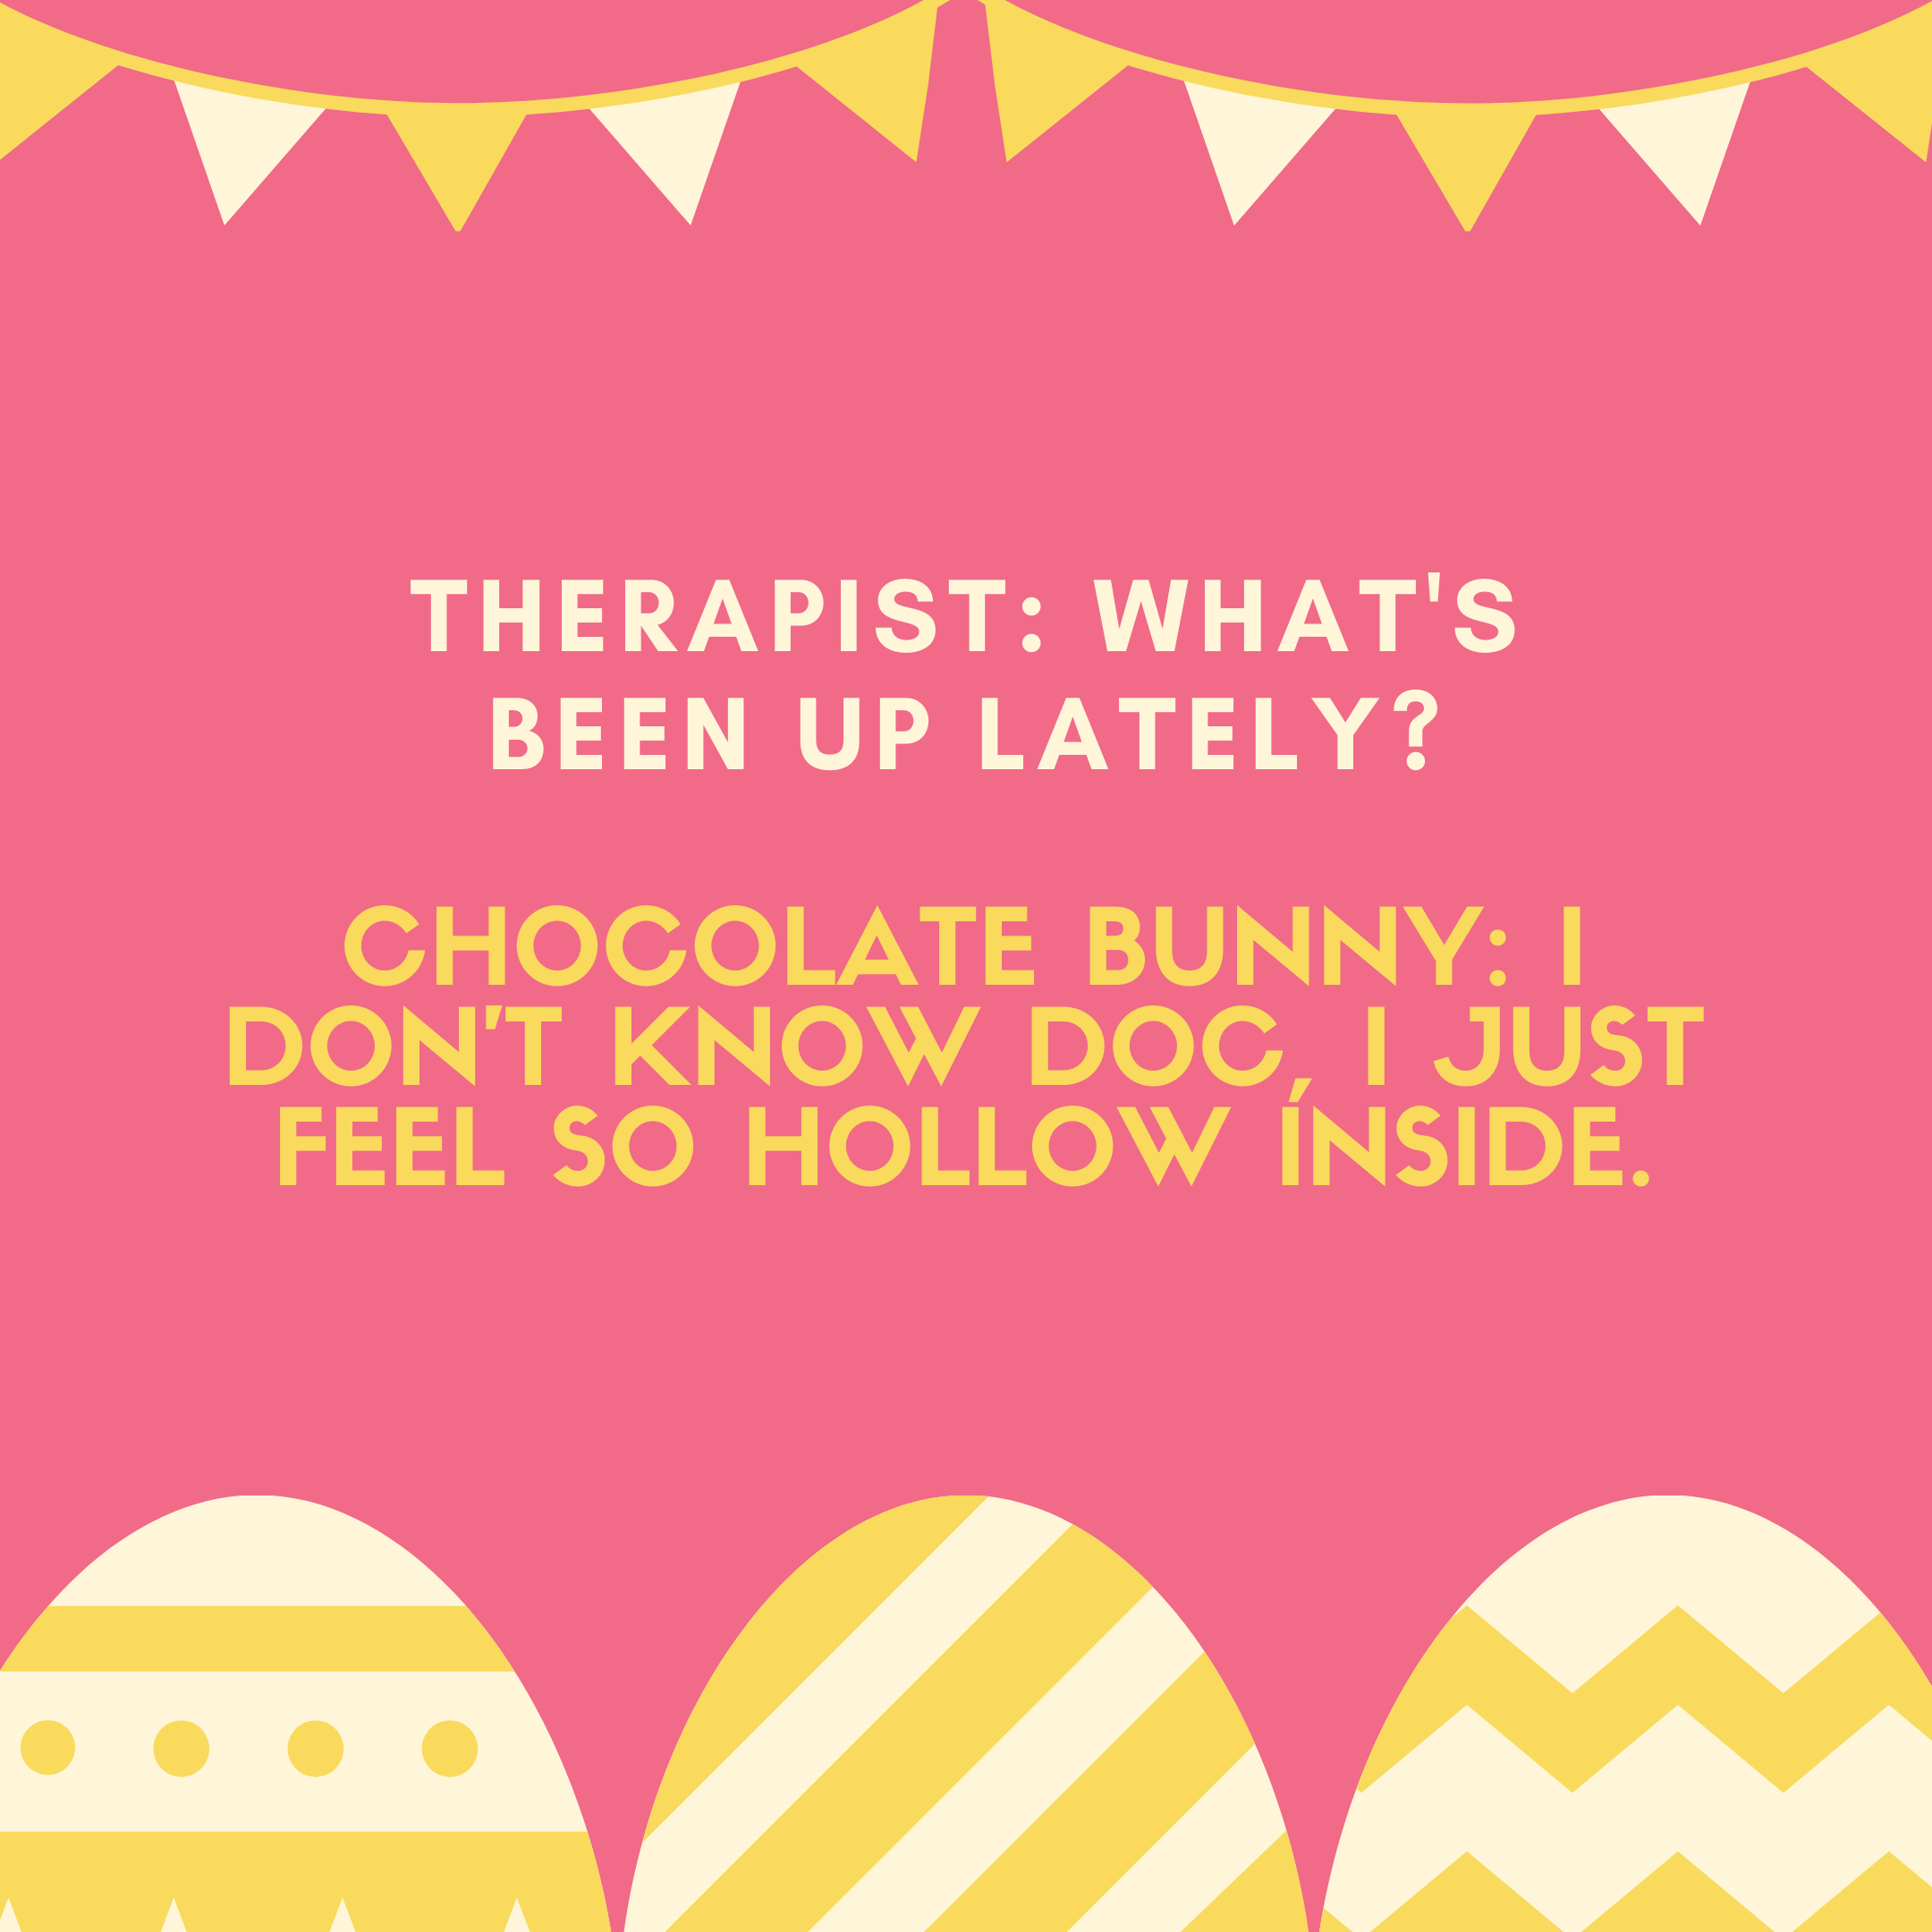 Chocolate bunny: I don't know Doc, I just feel so hollow inside.